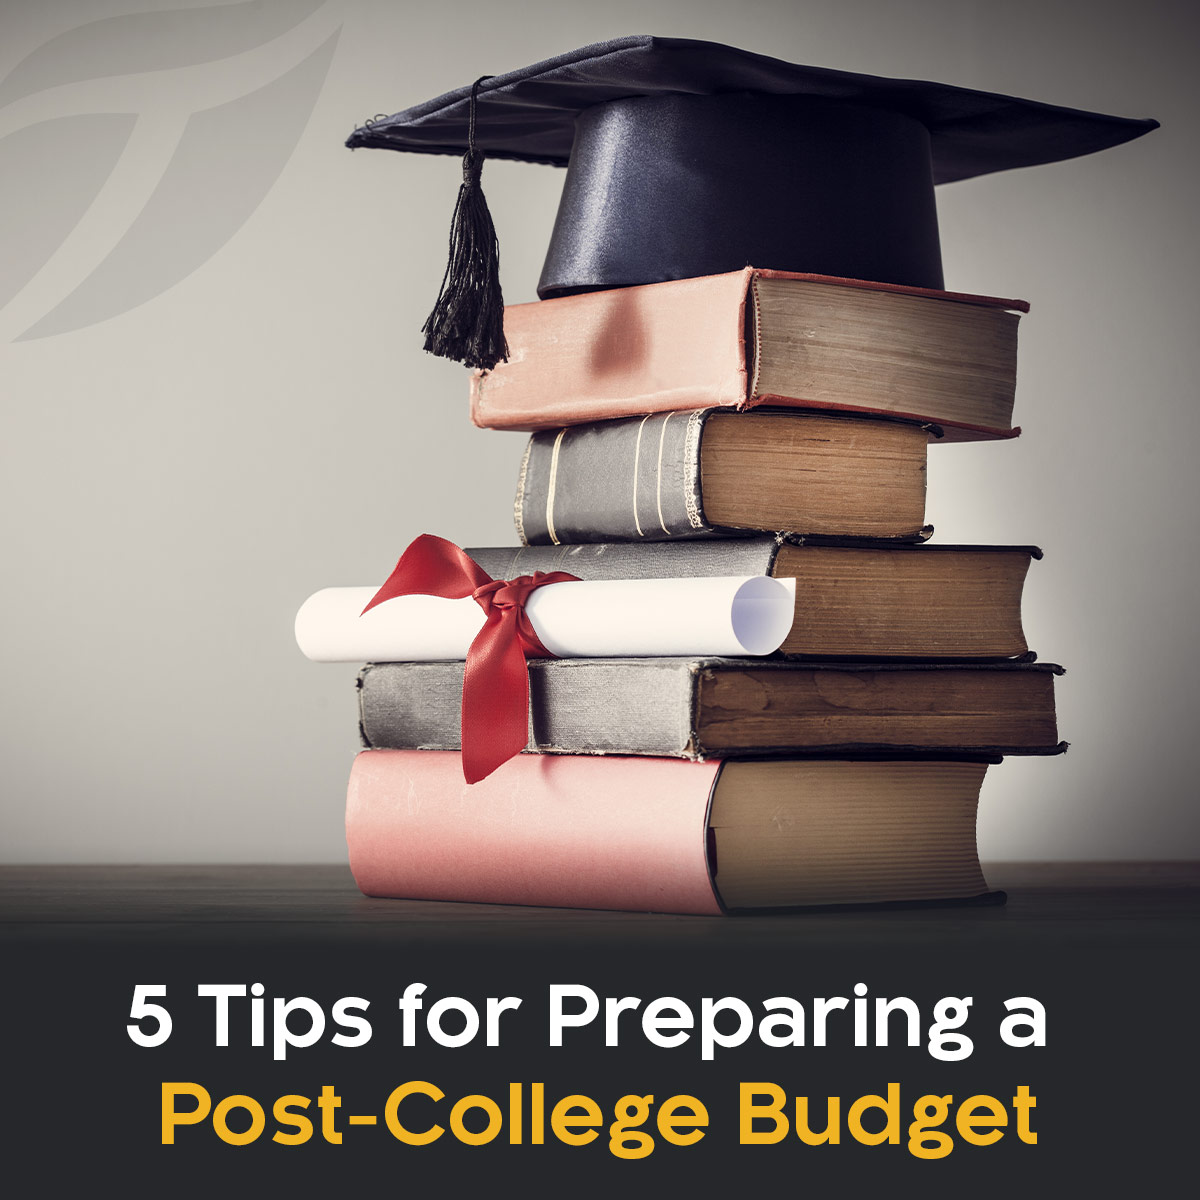 5 Tips For Preparing a Post-College Budget